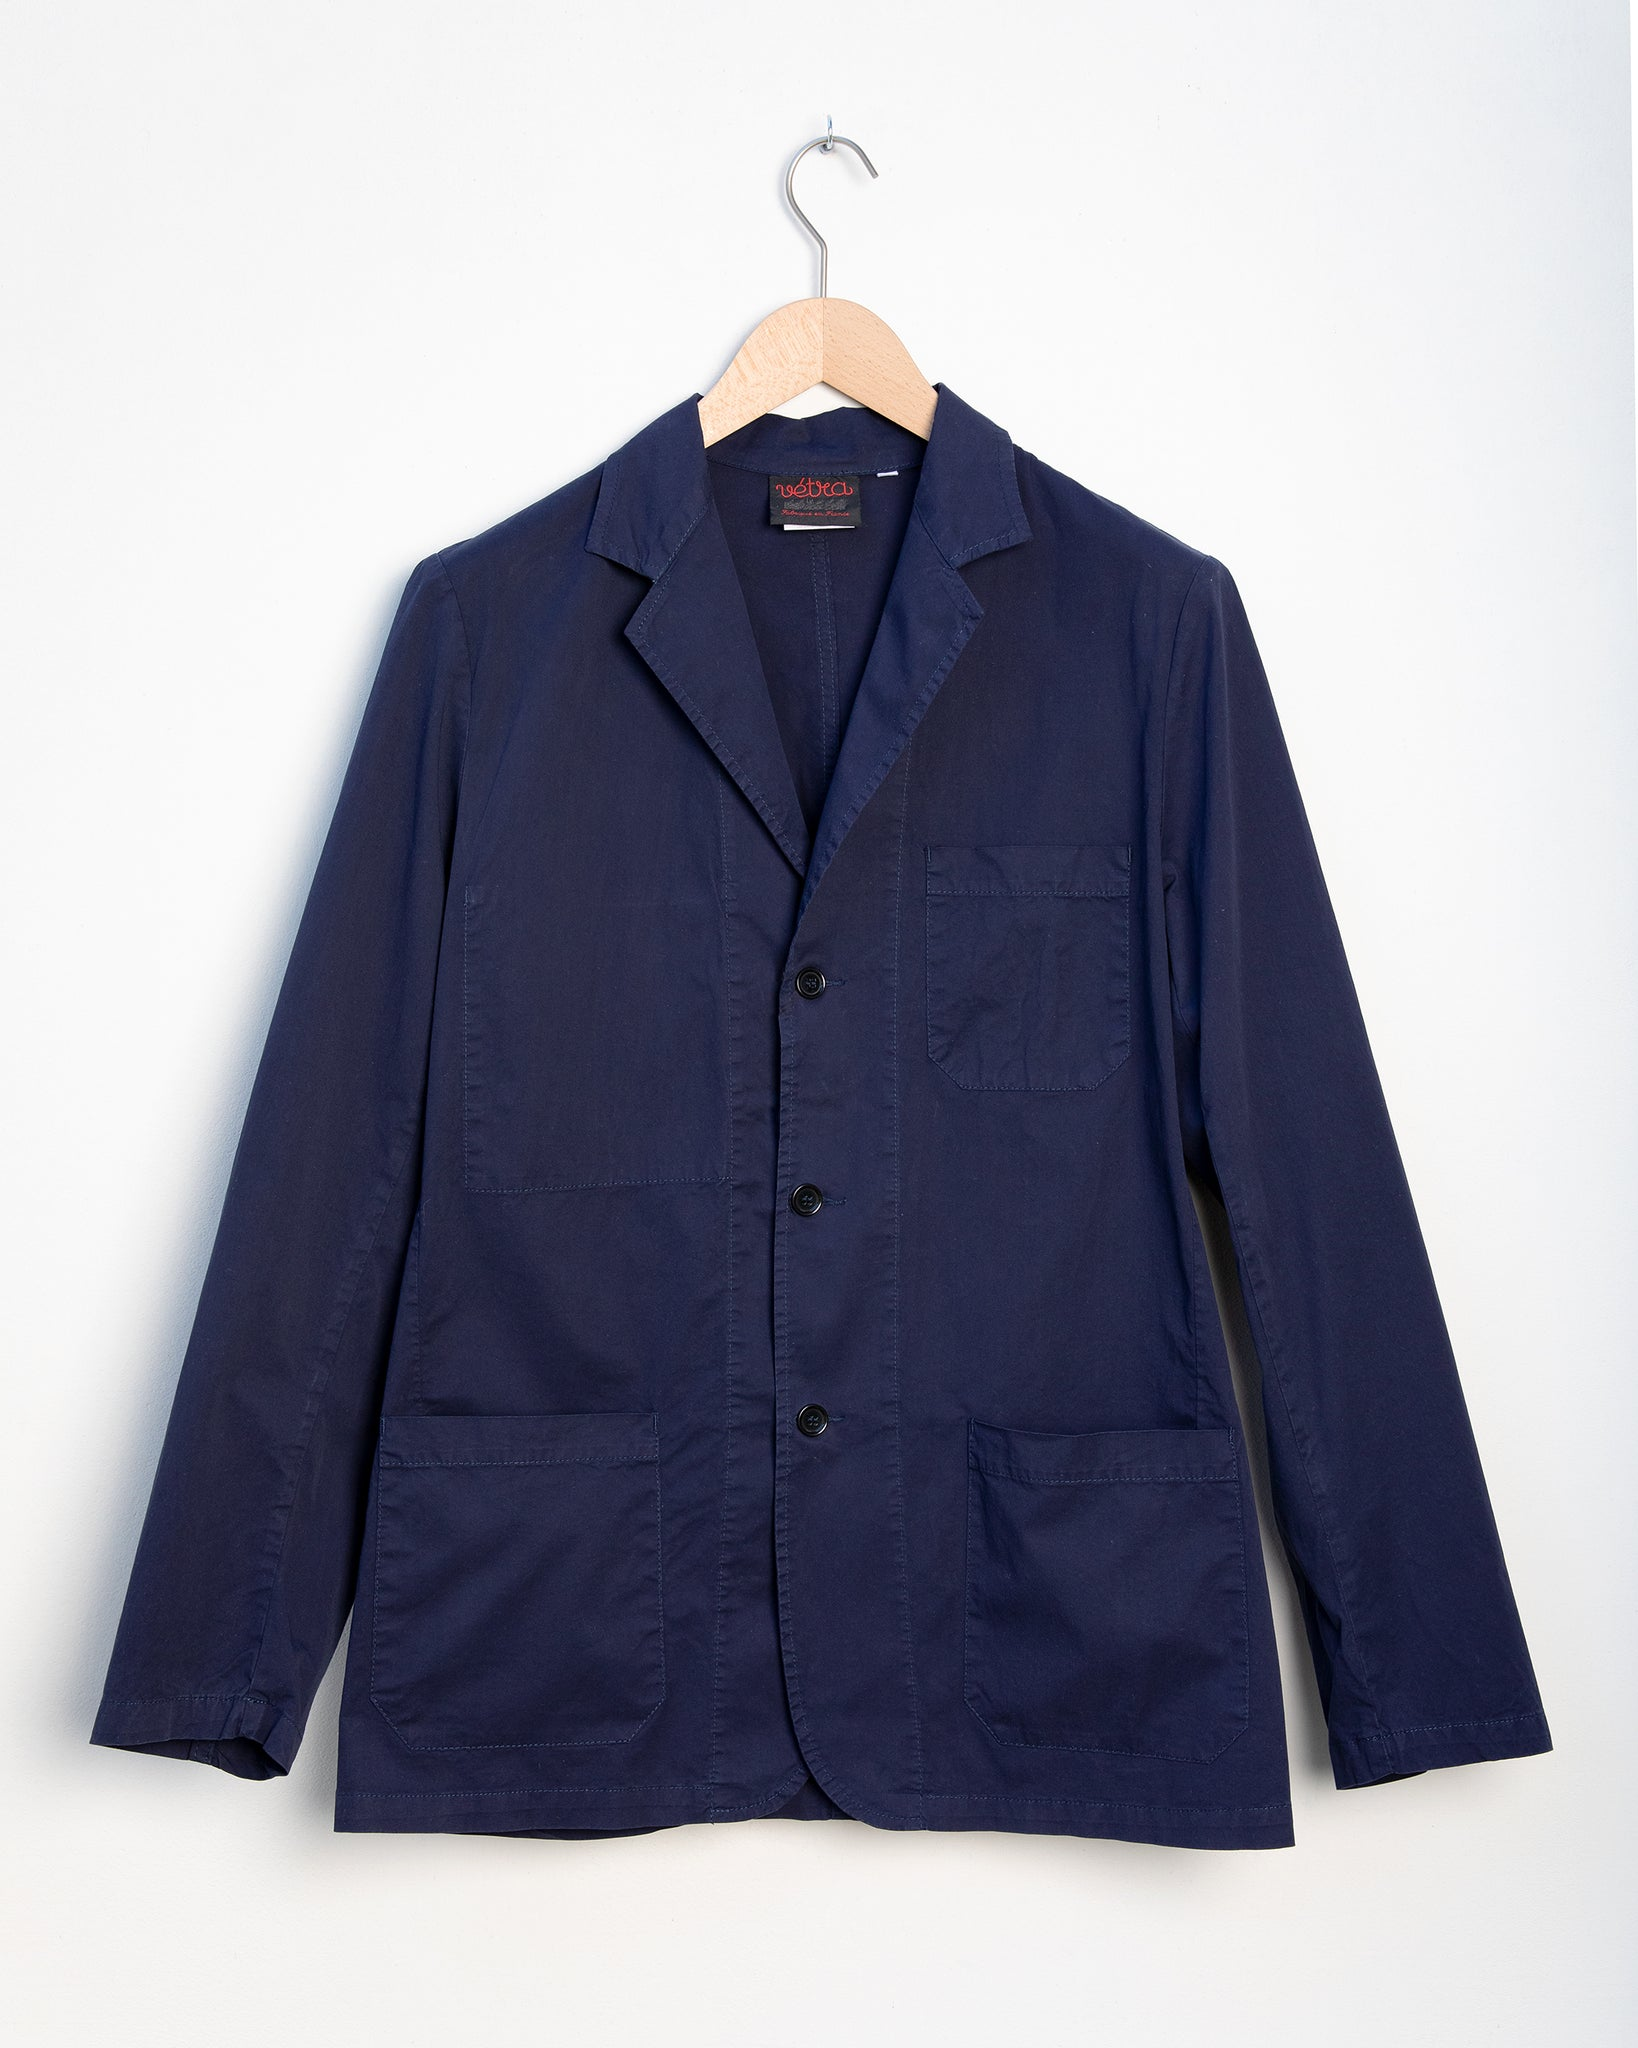 Poplin Cotton Blazer  - Navy